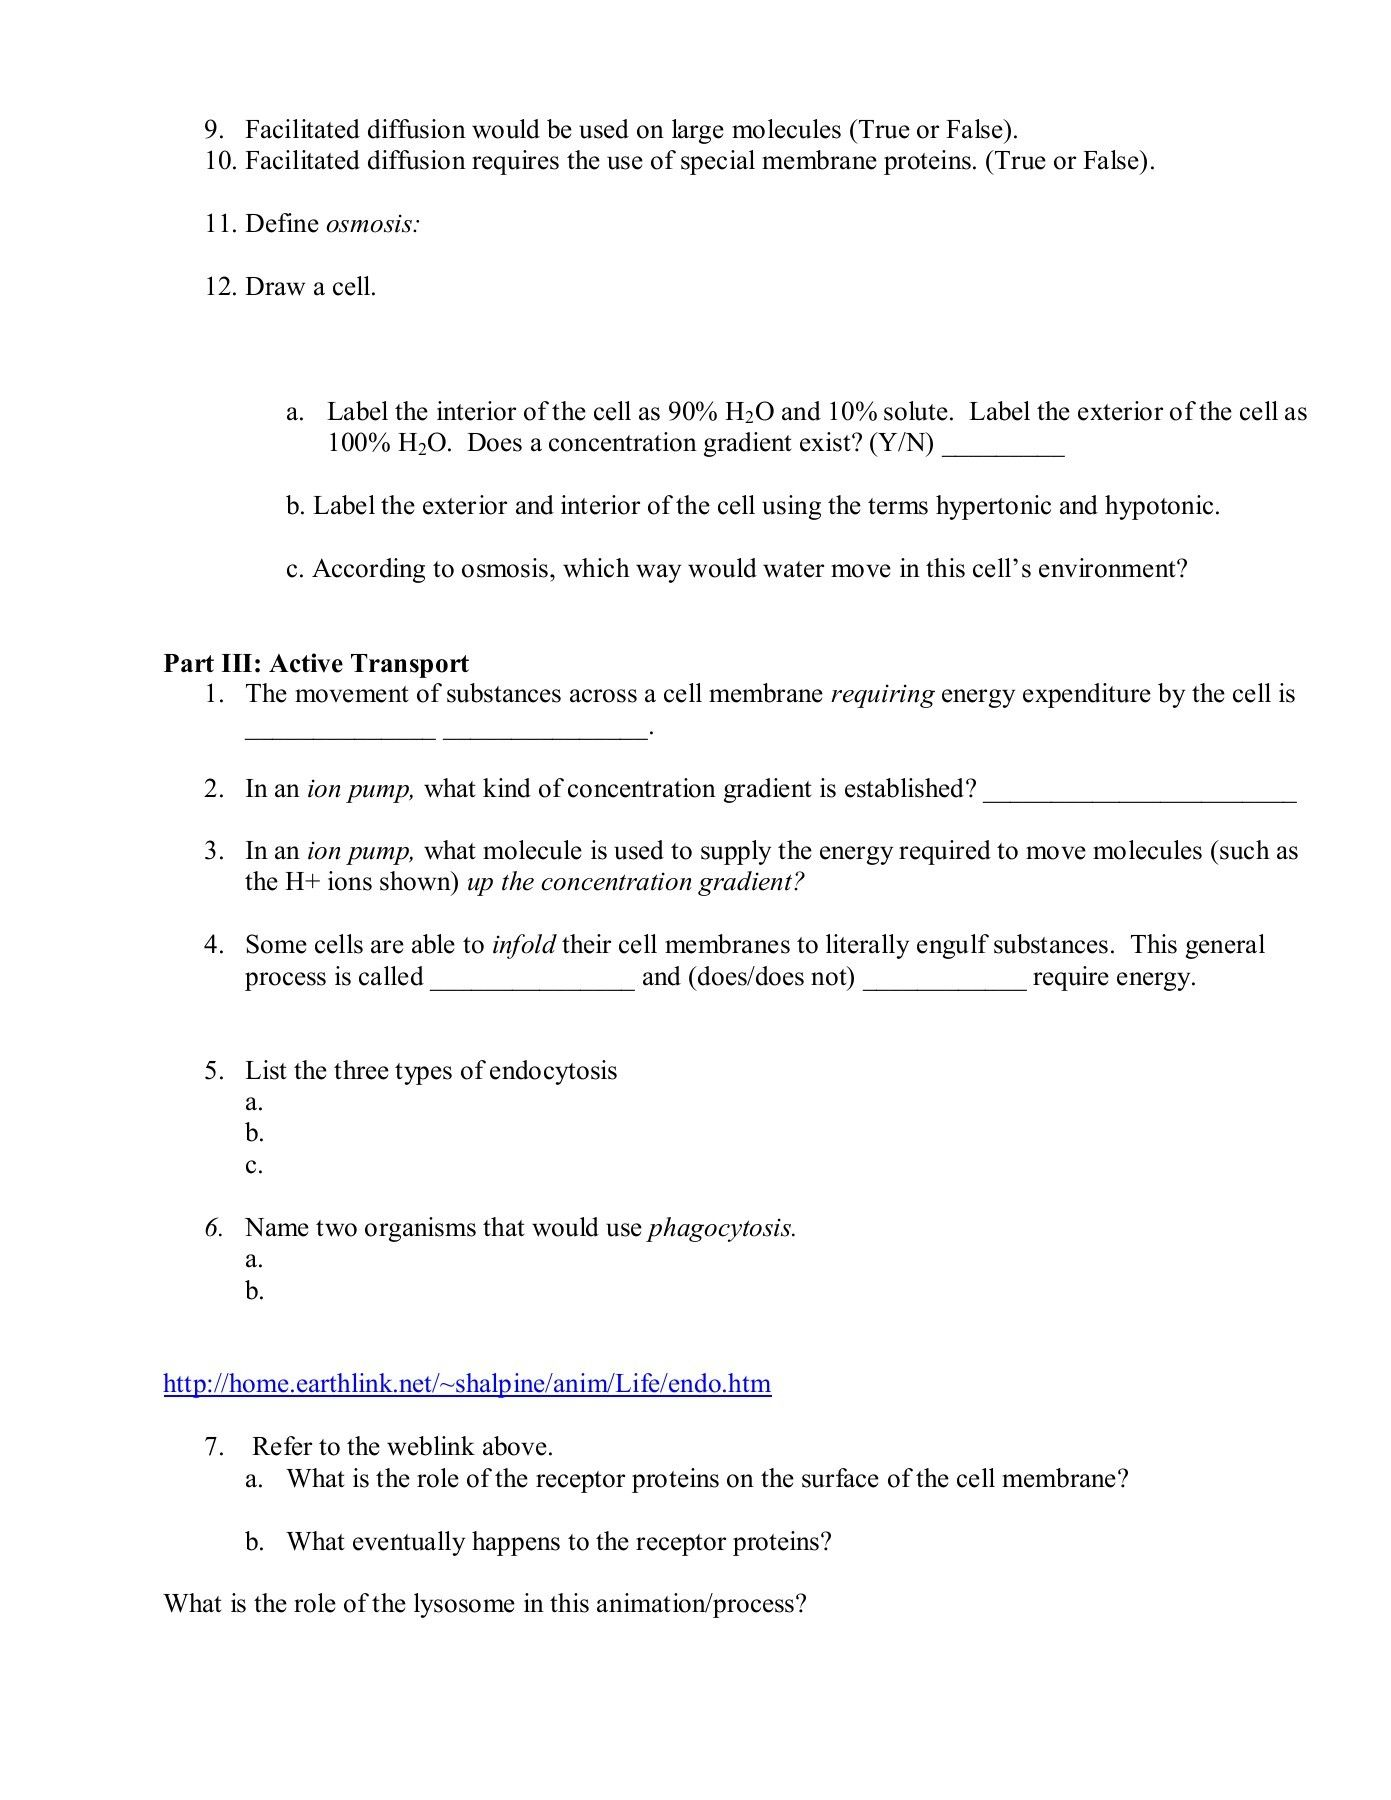 Cell Transport Webquest Worksheet Answers